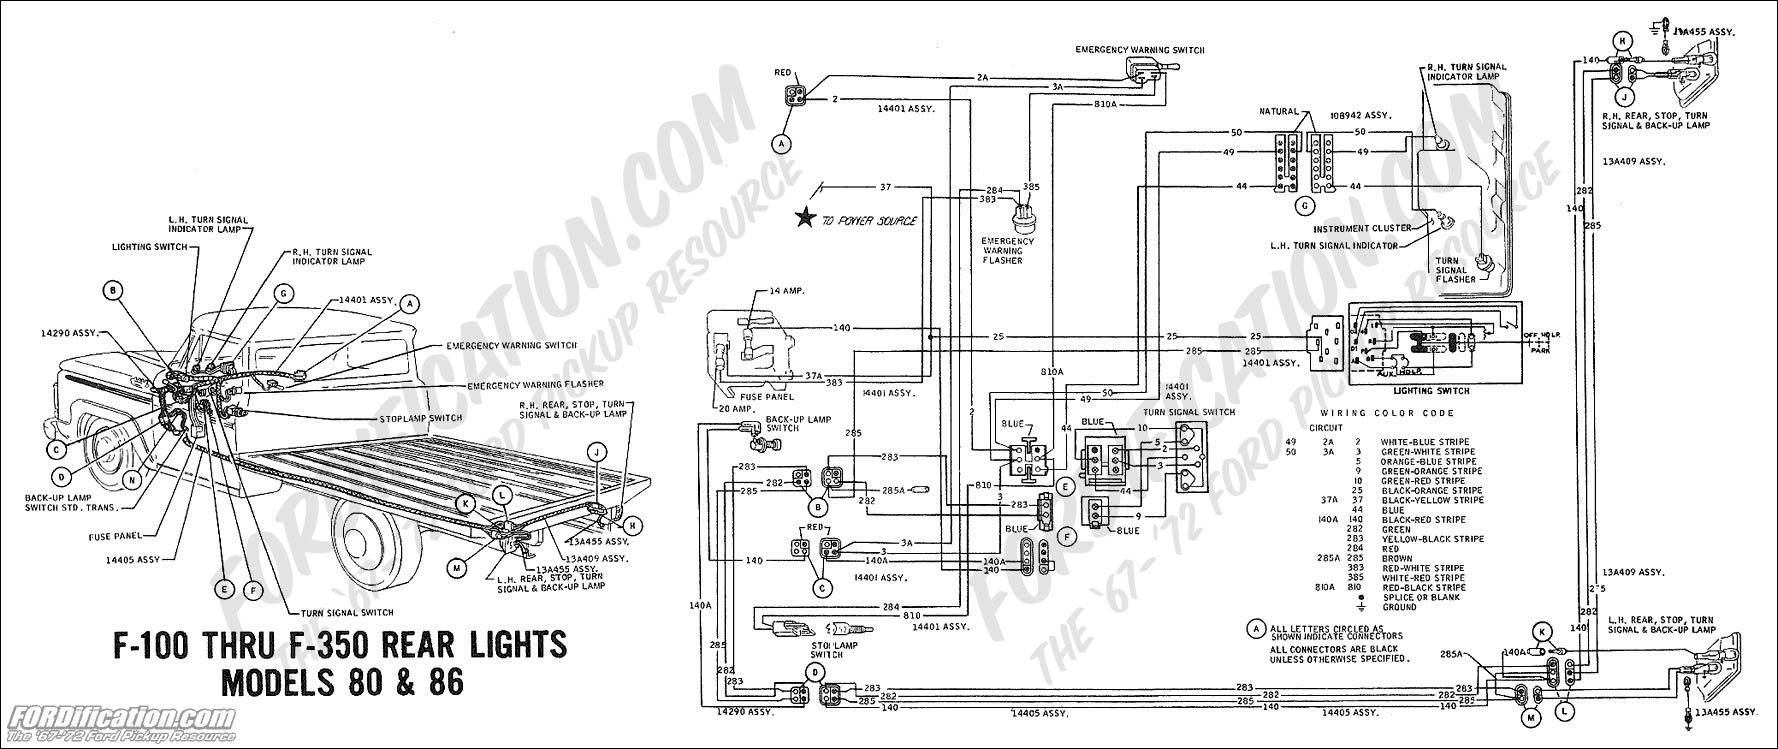 wiring_69rearlights mdls80 86 ford truck technical drawings and schematics section h wiring 2013 Ford F350 Wiring Diagram at reclaimingppi.co